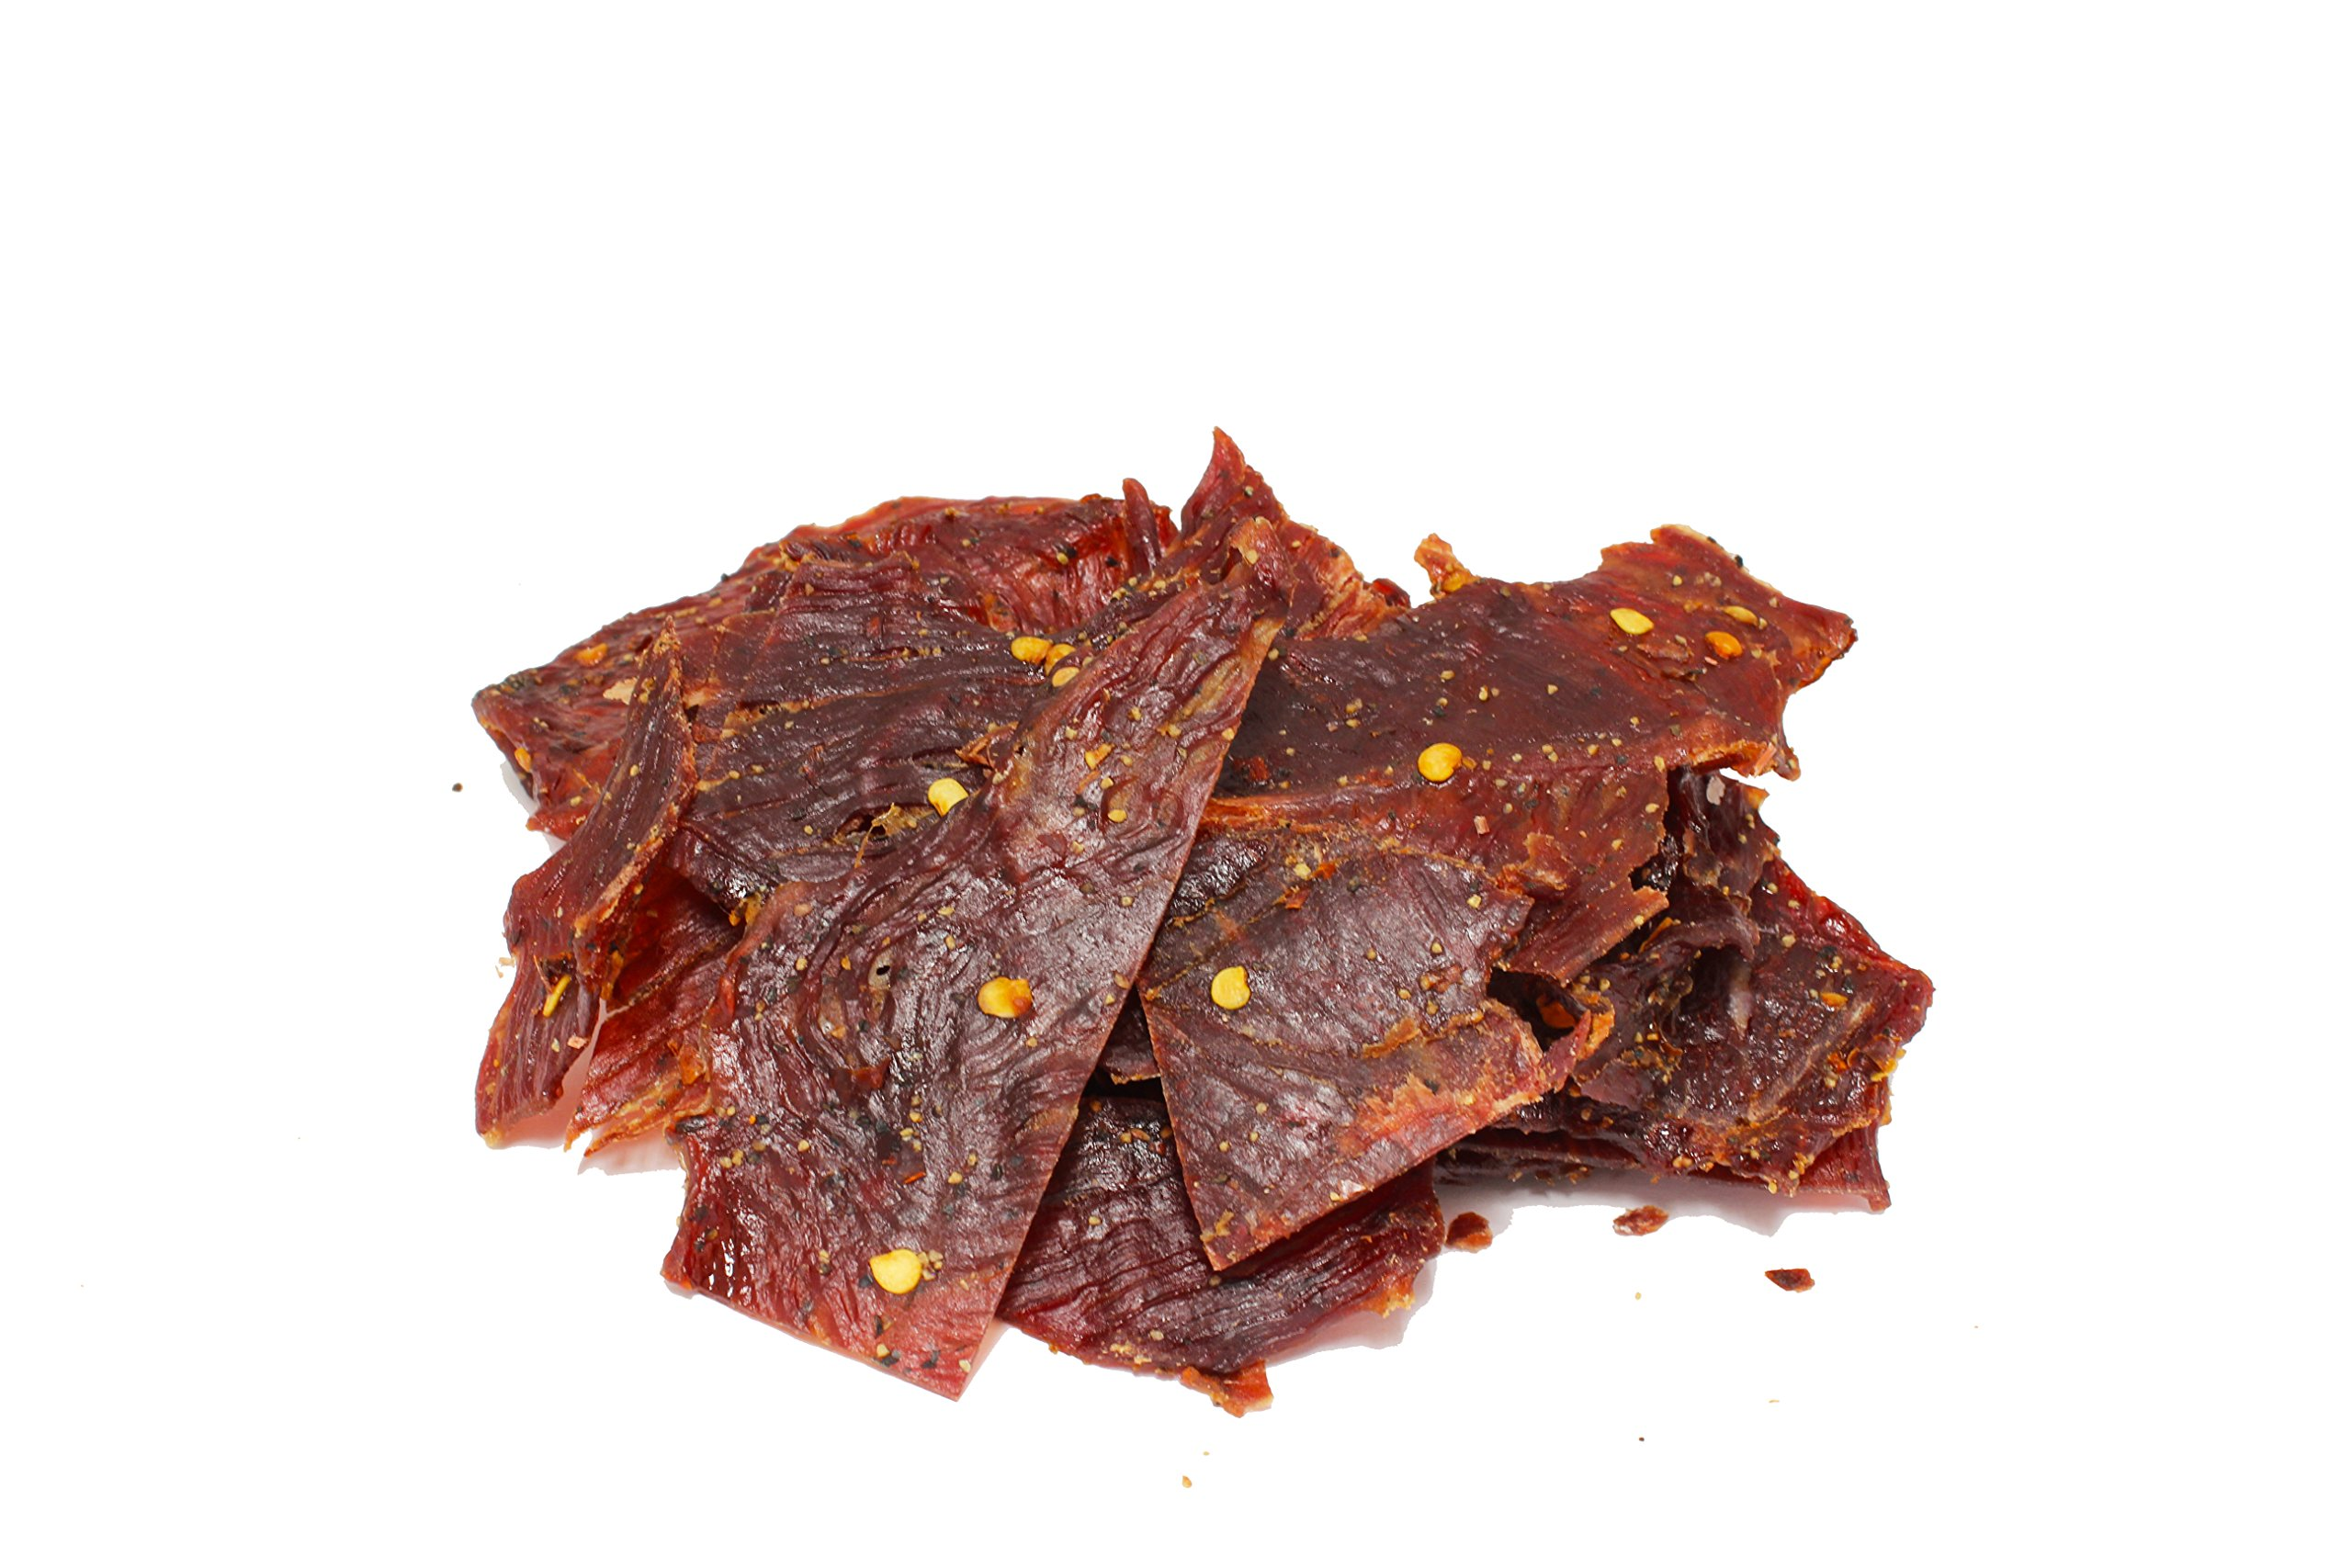 People's Choice Beef Jerky - Classic - Hot & Spicy - High Protein Meat Snack - 3 Ounce Bag by People's Choice Beef Jerky (Image #2)